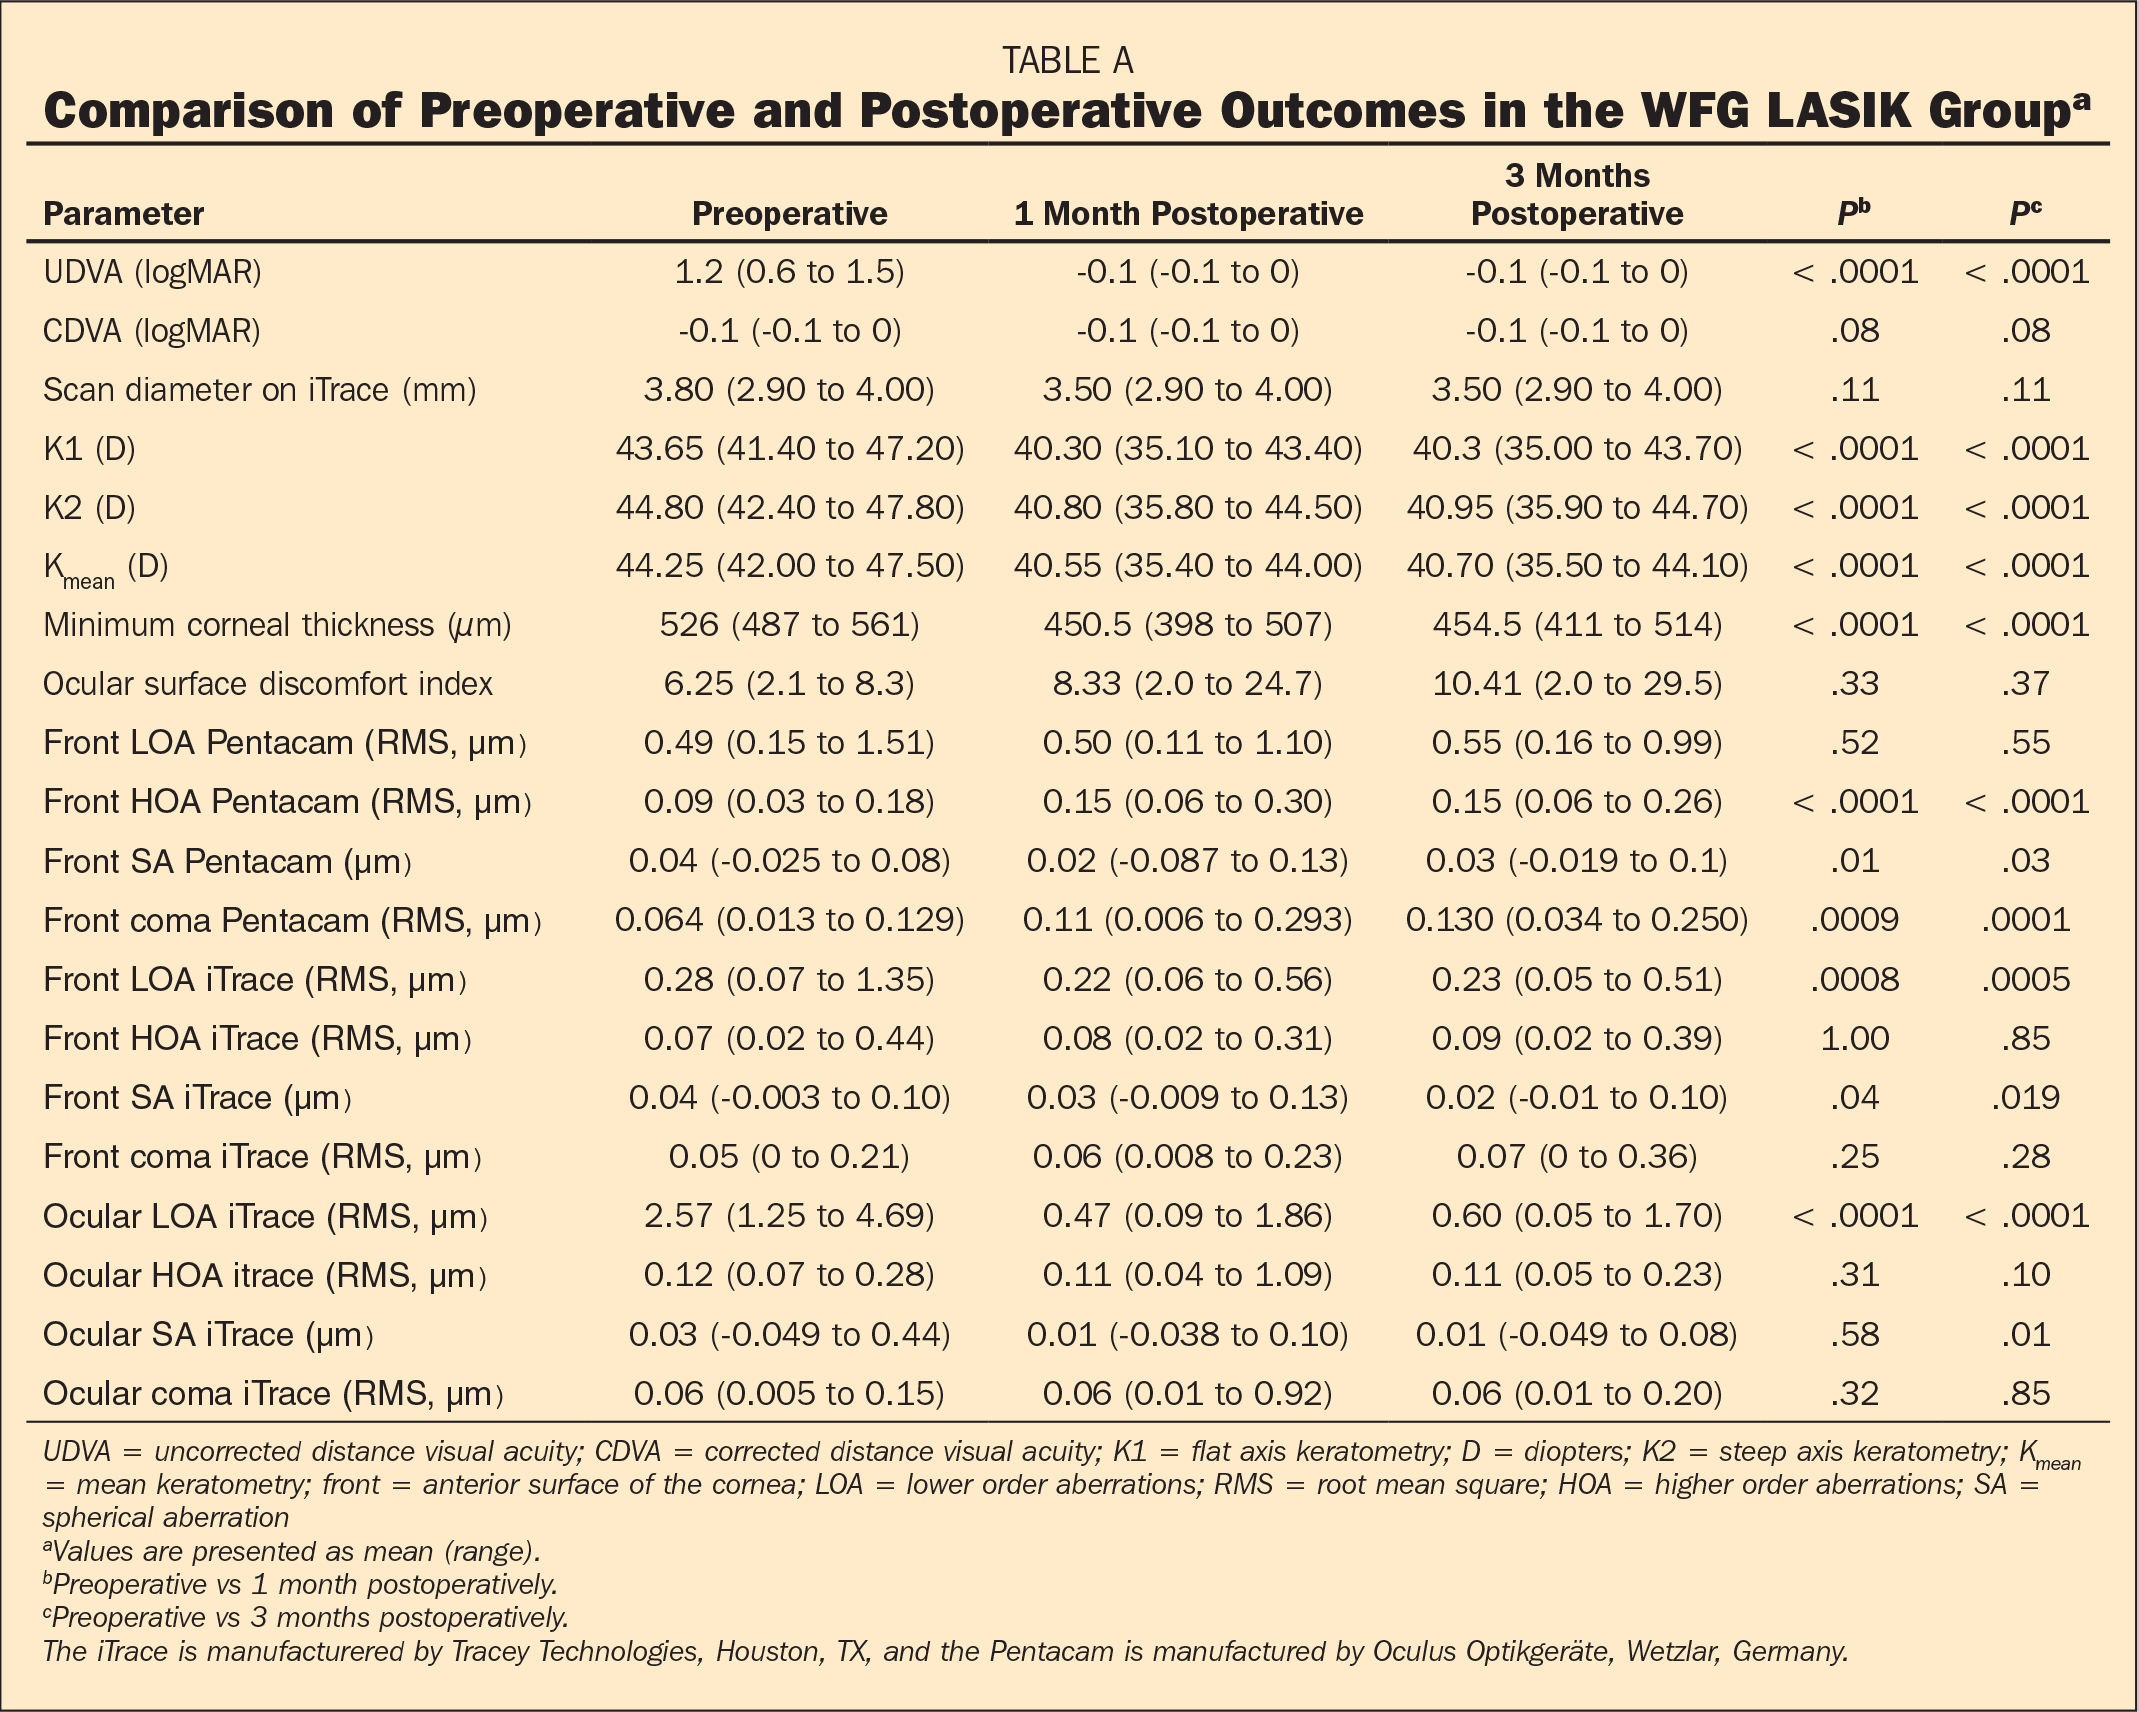 Comparison of Preoperative and Postoperative Outcomes in the WFG LASIK Groupa